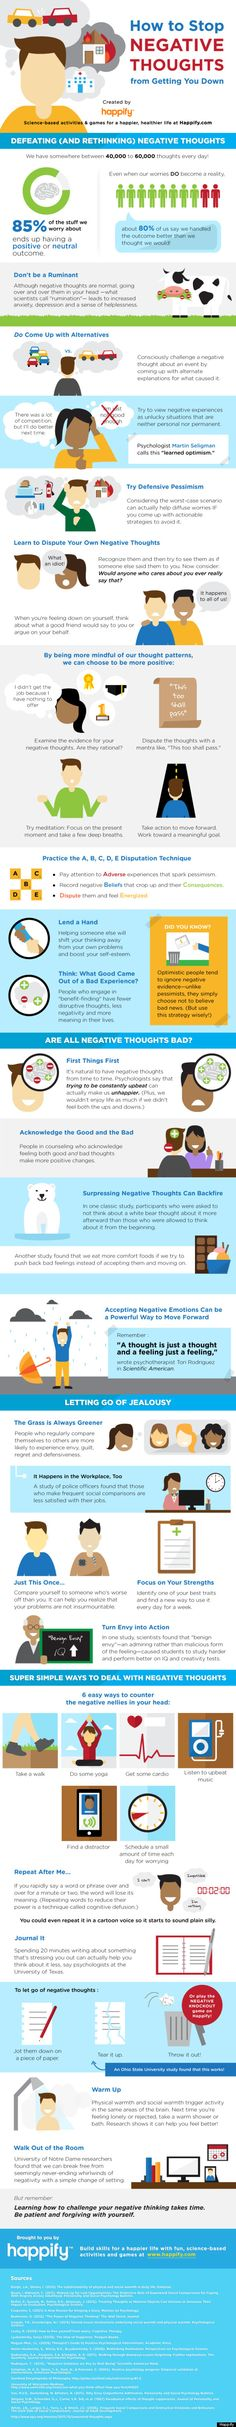 Psychology infographic and charts Learn how to stay focused and prevent negative thoughts from ruining your day…. Infographic Description Learn how to stay focused and prevent negative thoughts from ruining your day. Therapy Tools, Cbt Therapy, Negative Thoughts, Negative Thinking, Positive Thoughts, Think Positive, Positive Thinking Tips, Negative Self Talk, Negative People